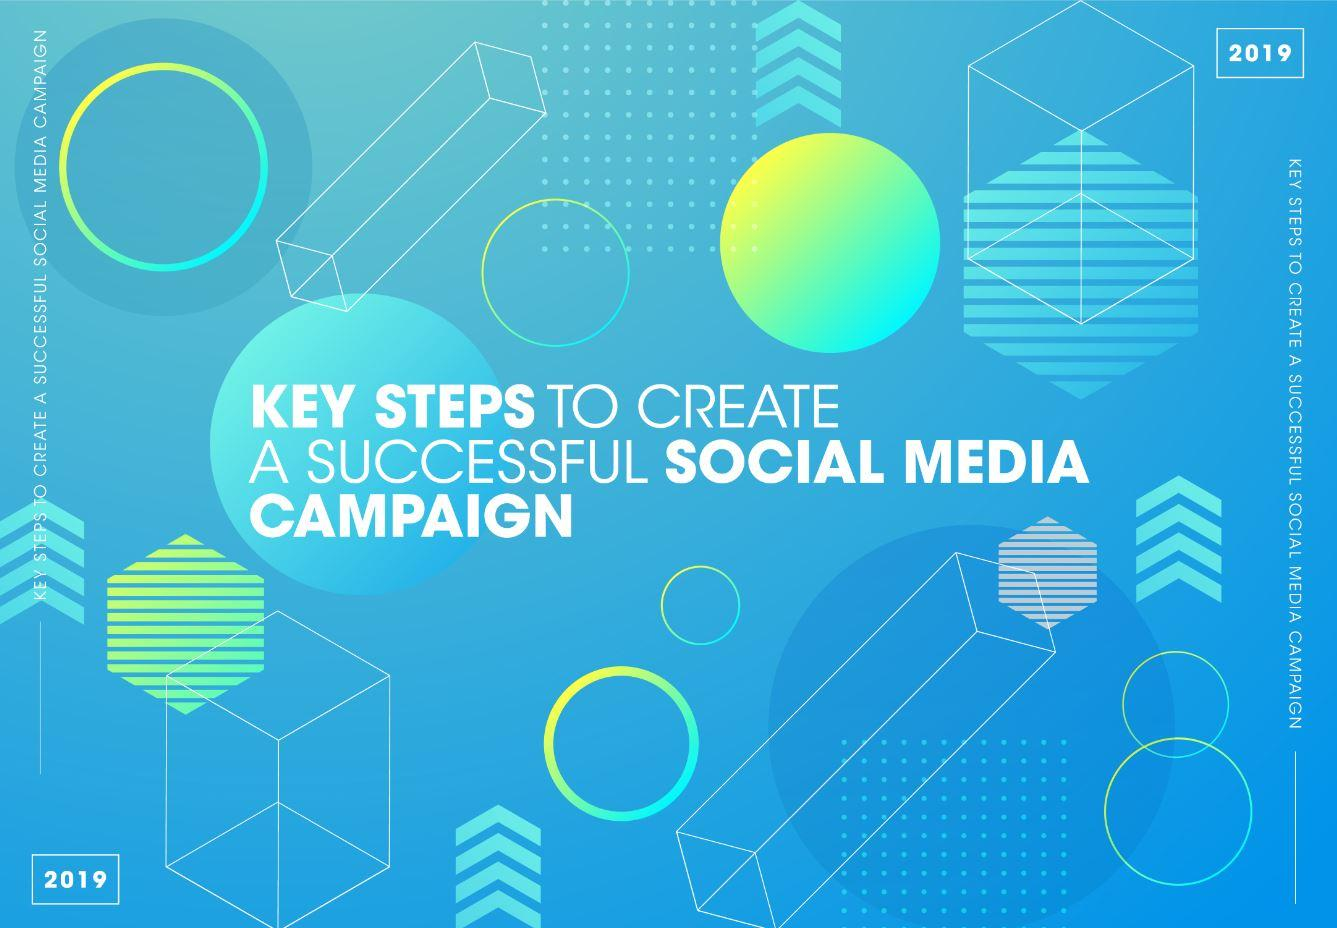 KEY STEPS TO CREATE A SUCCESSFUL SOCIAL MEDIA CAMPAIGN - News